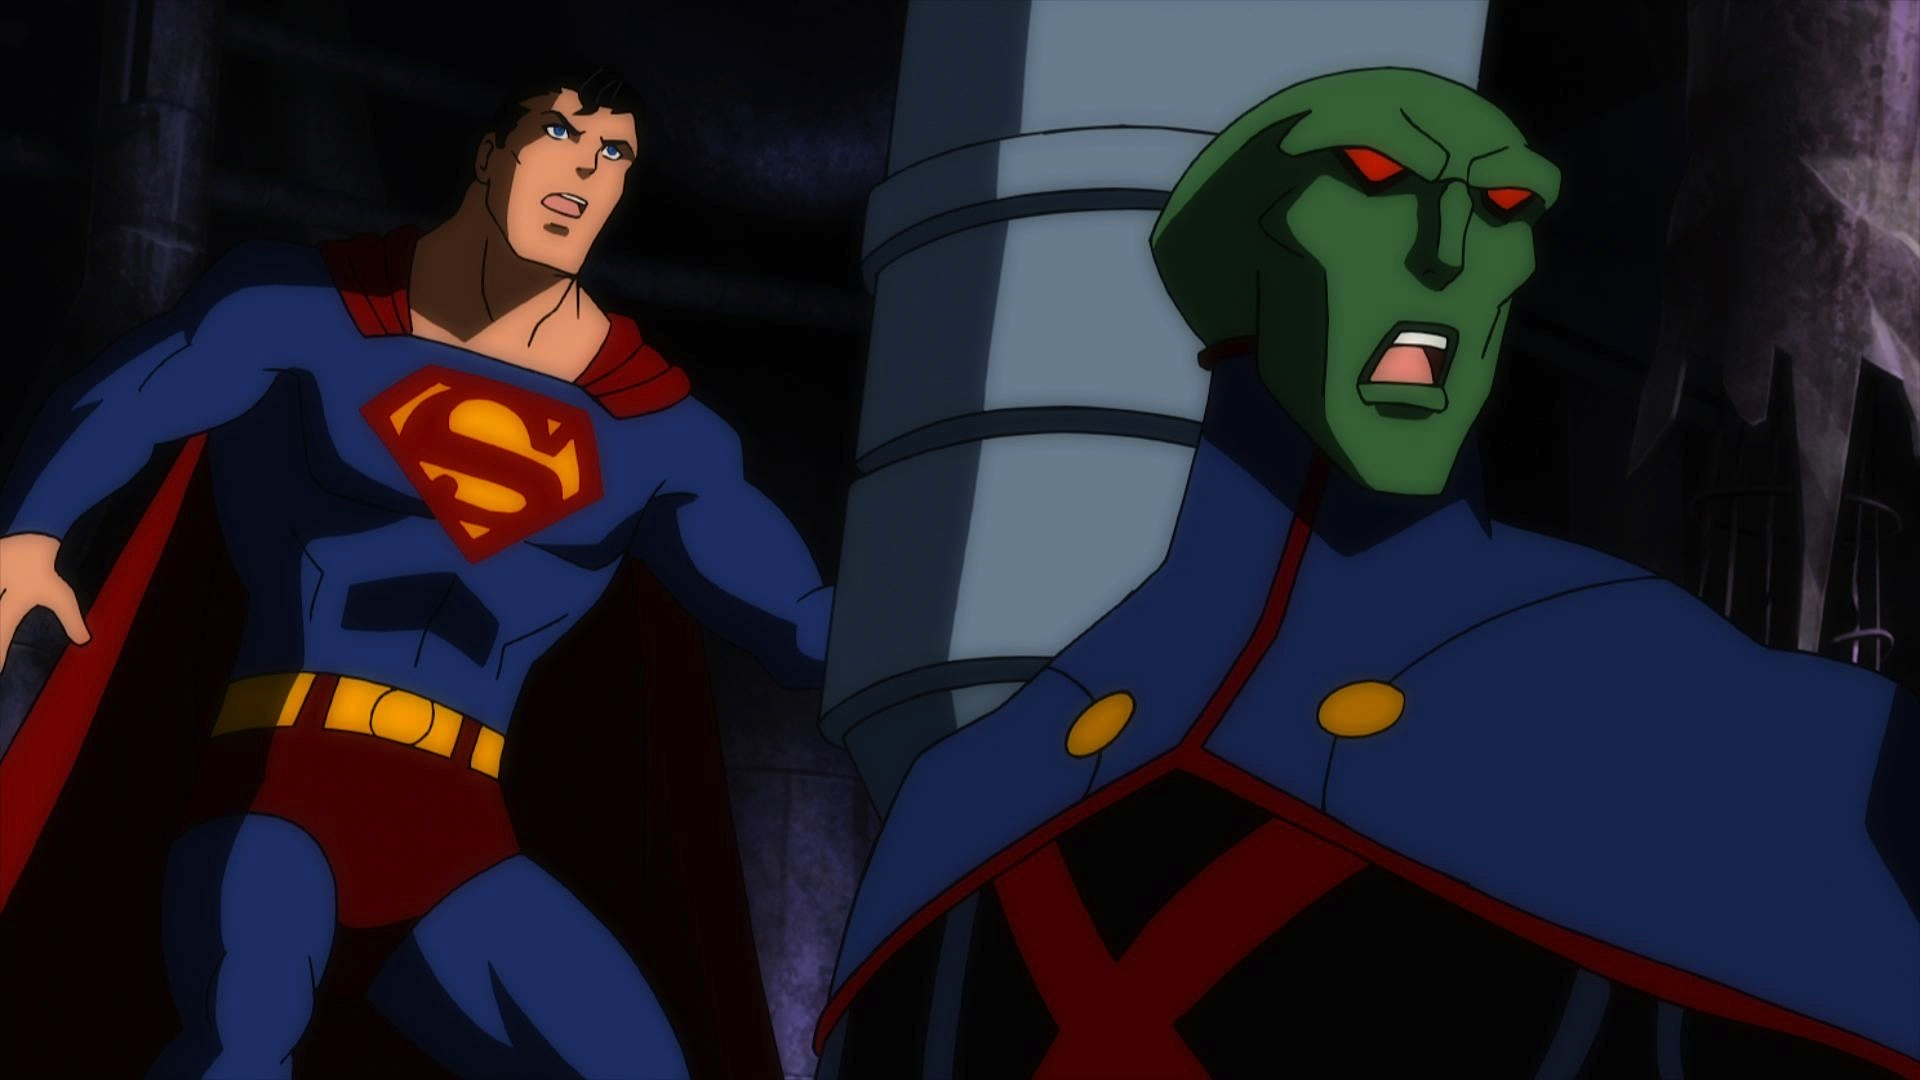 See Superman battle the android strongman of the Royal Flush Gang in this scene.